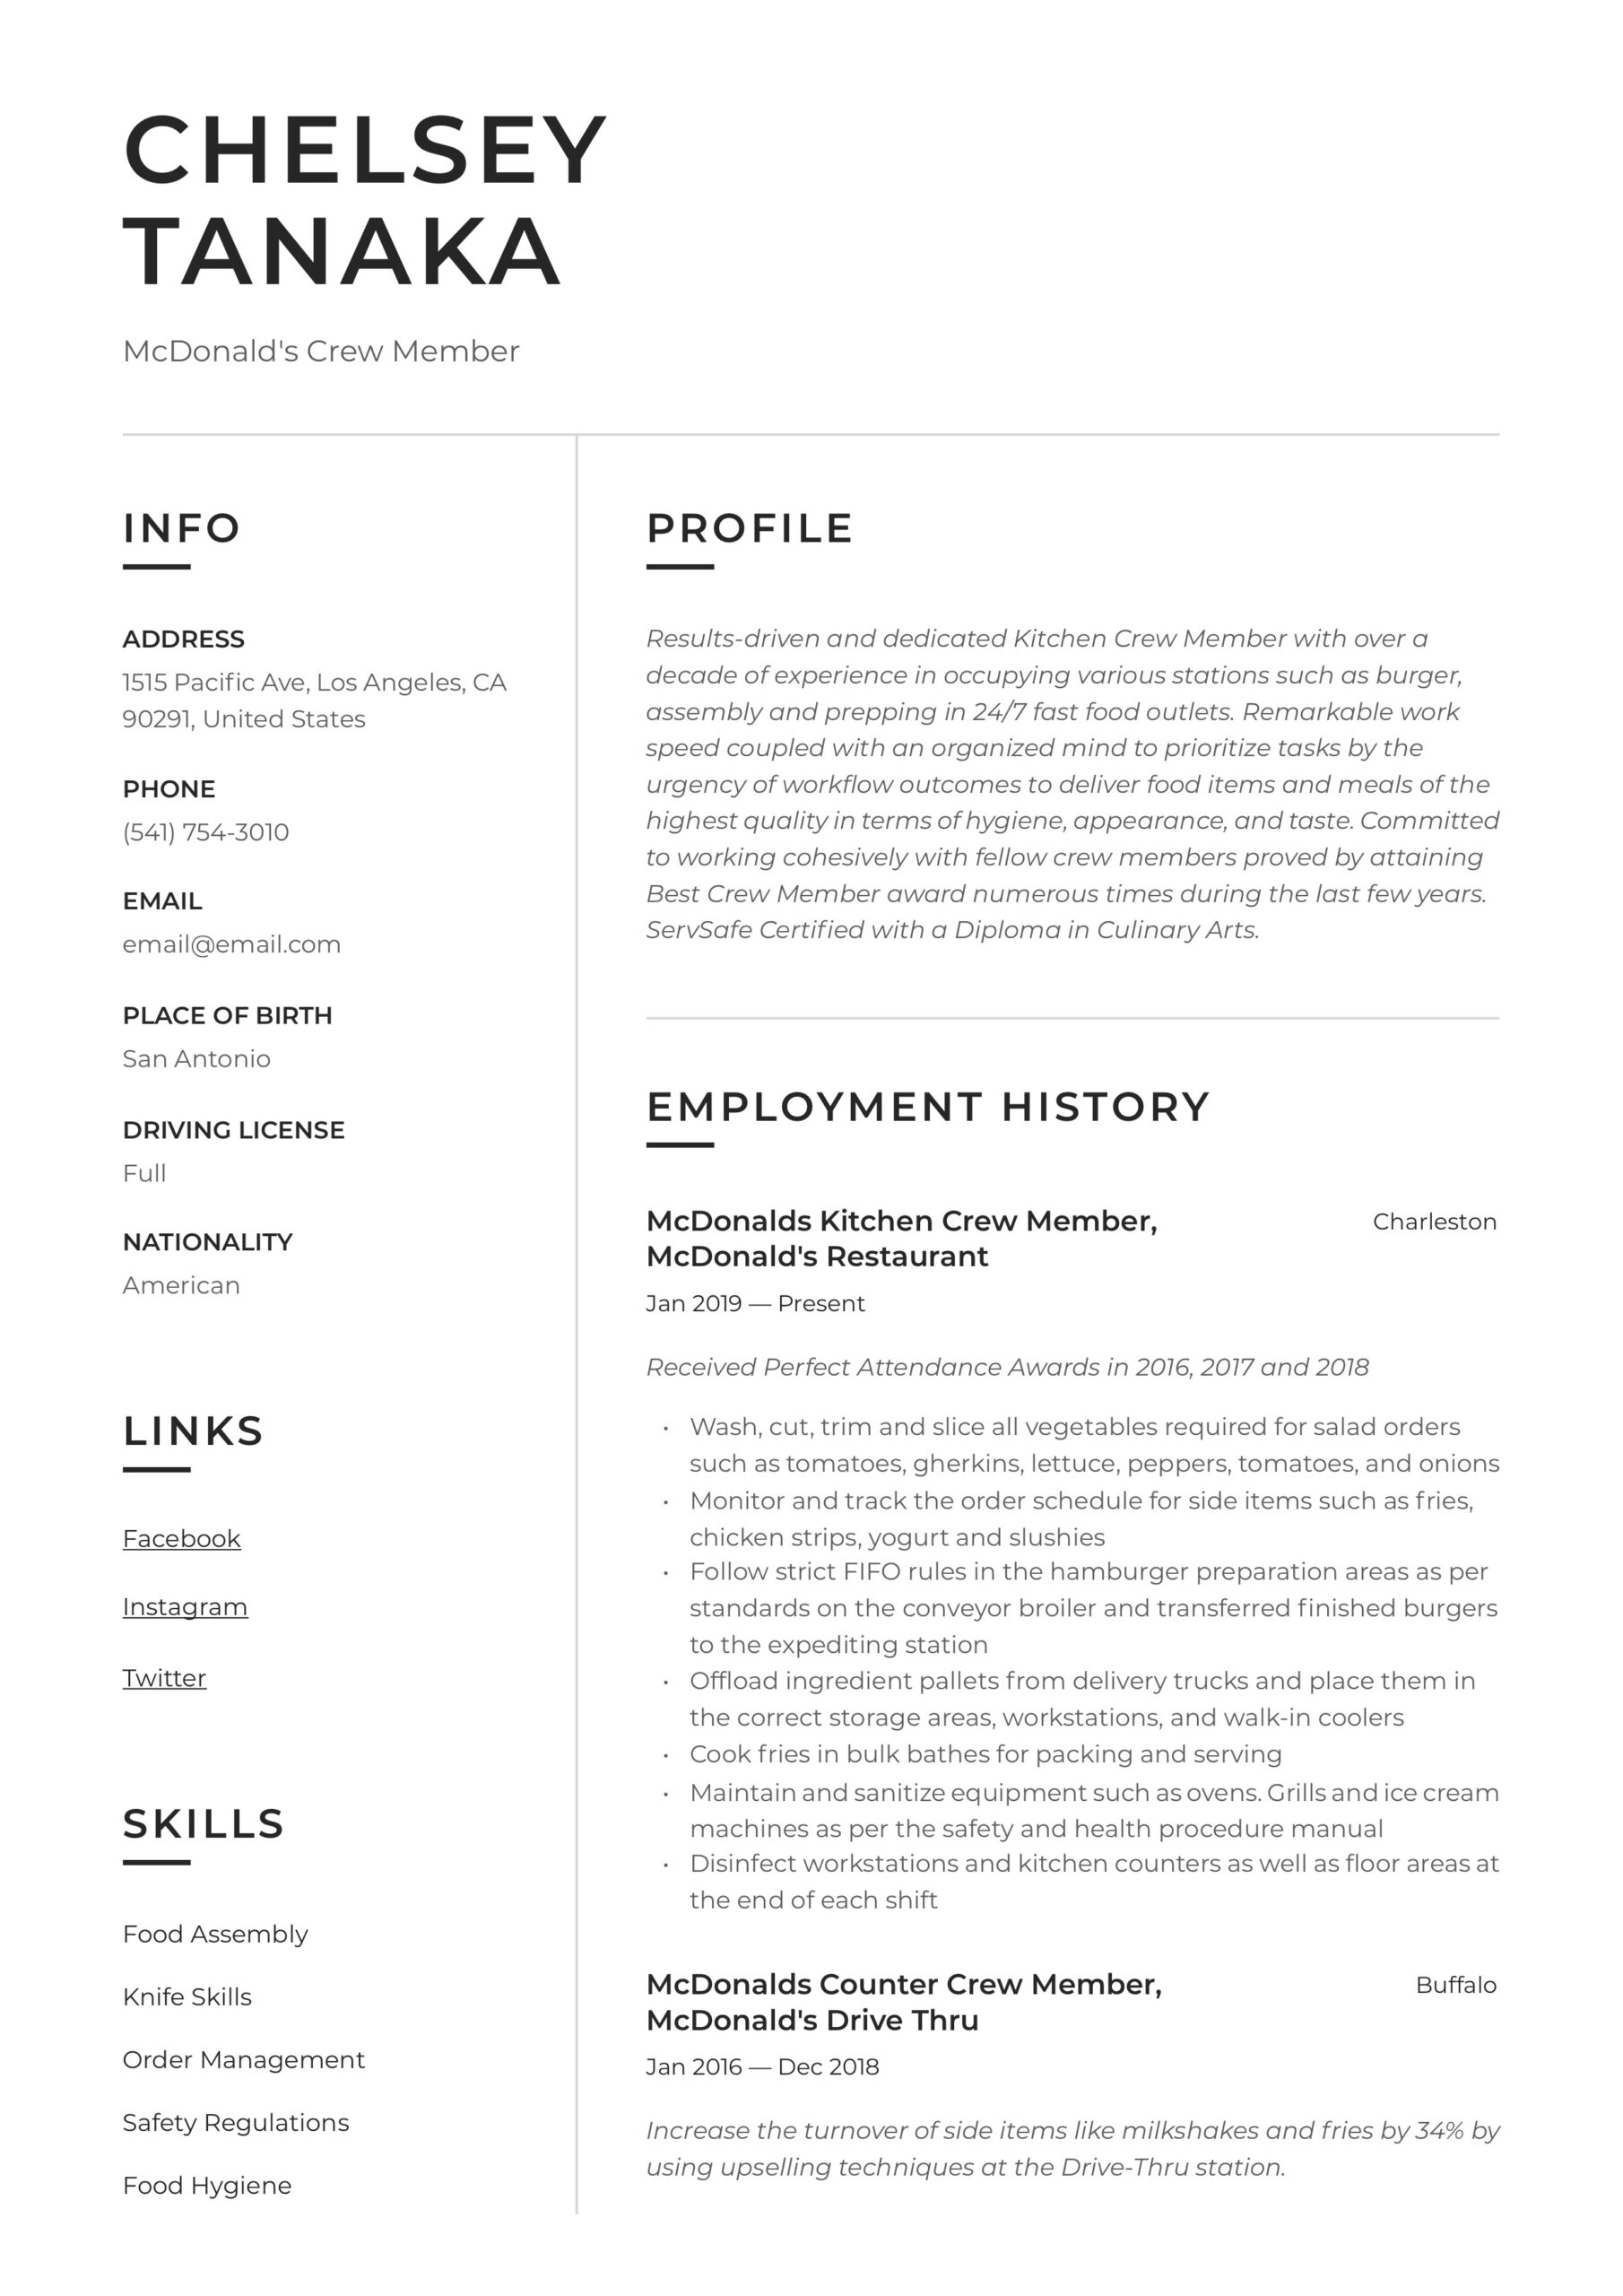 mcdonalds crew member resume writing guide examples trainer environmental compliance Resume Mcdonalds Crew Trainer Resume